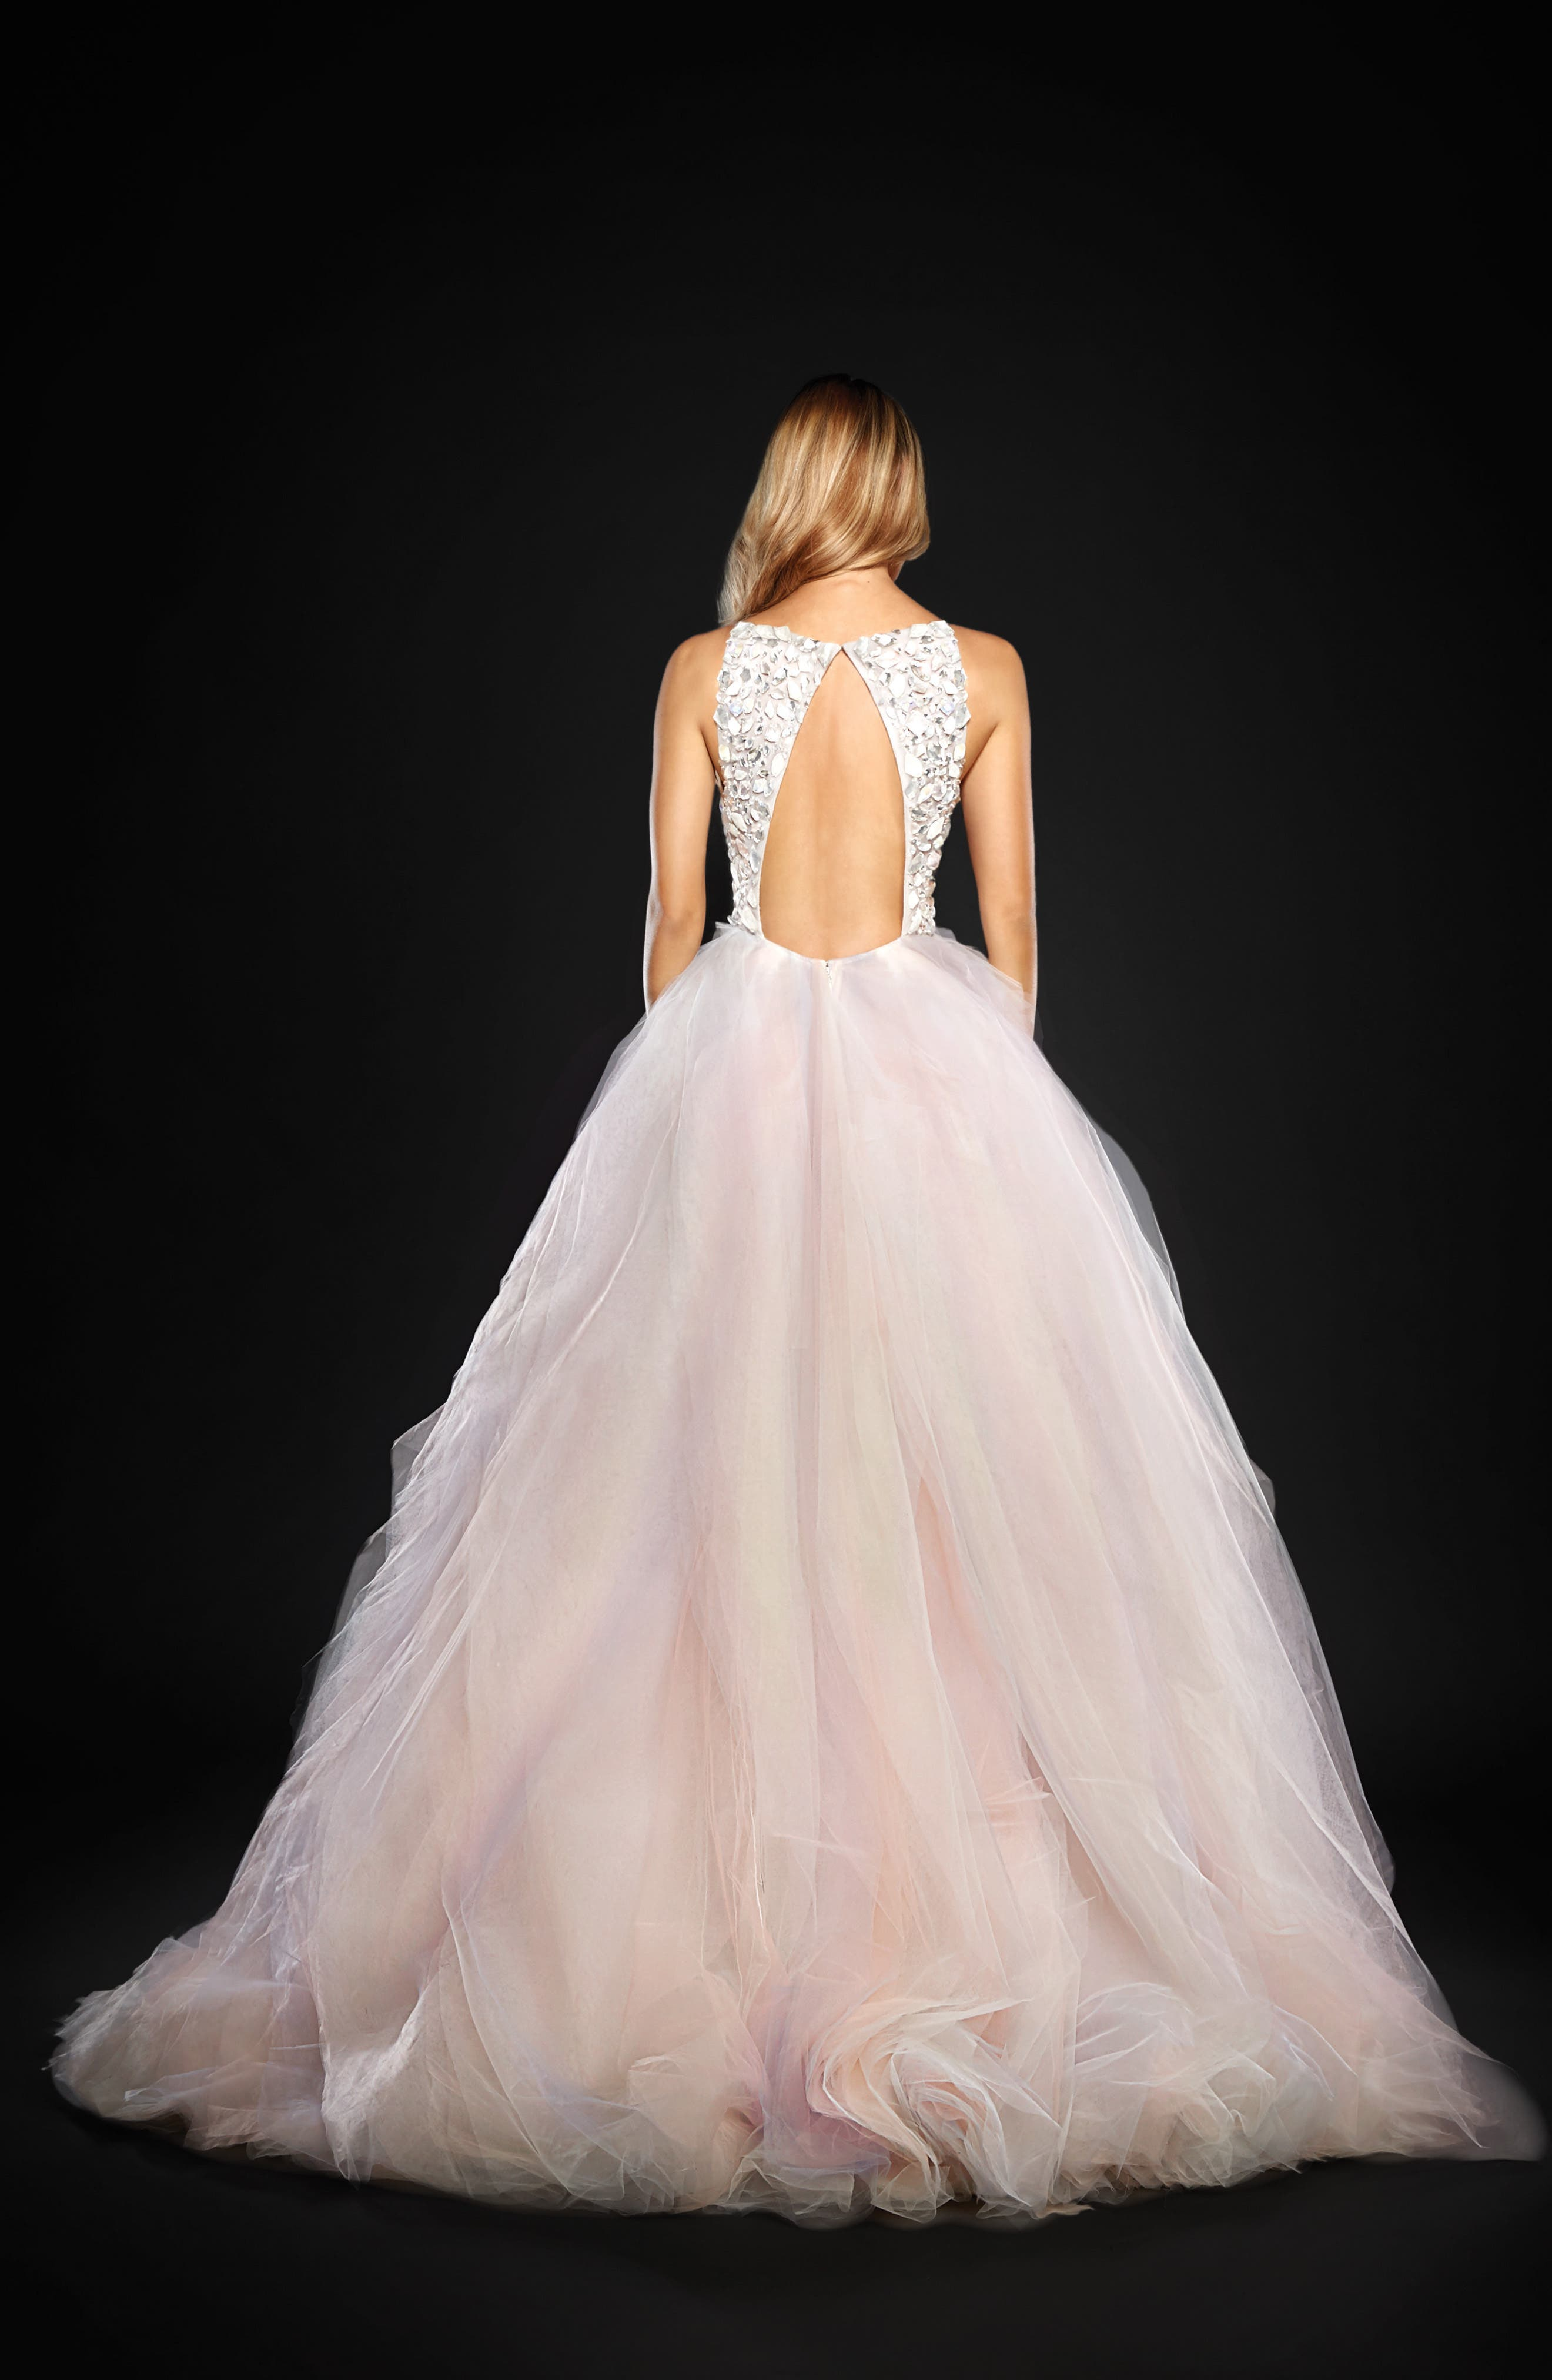 Jem Rock Candy Embellished Tulle Ballgown,                             Alternate thumbnail 2, color,                             900